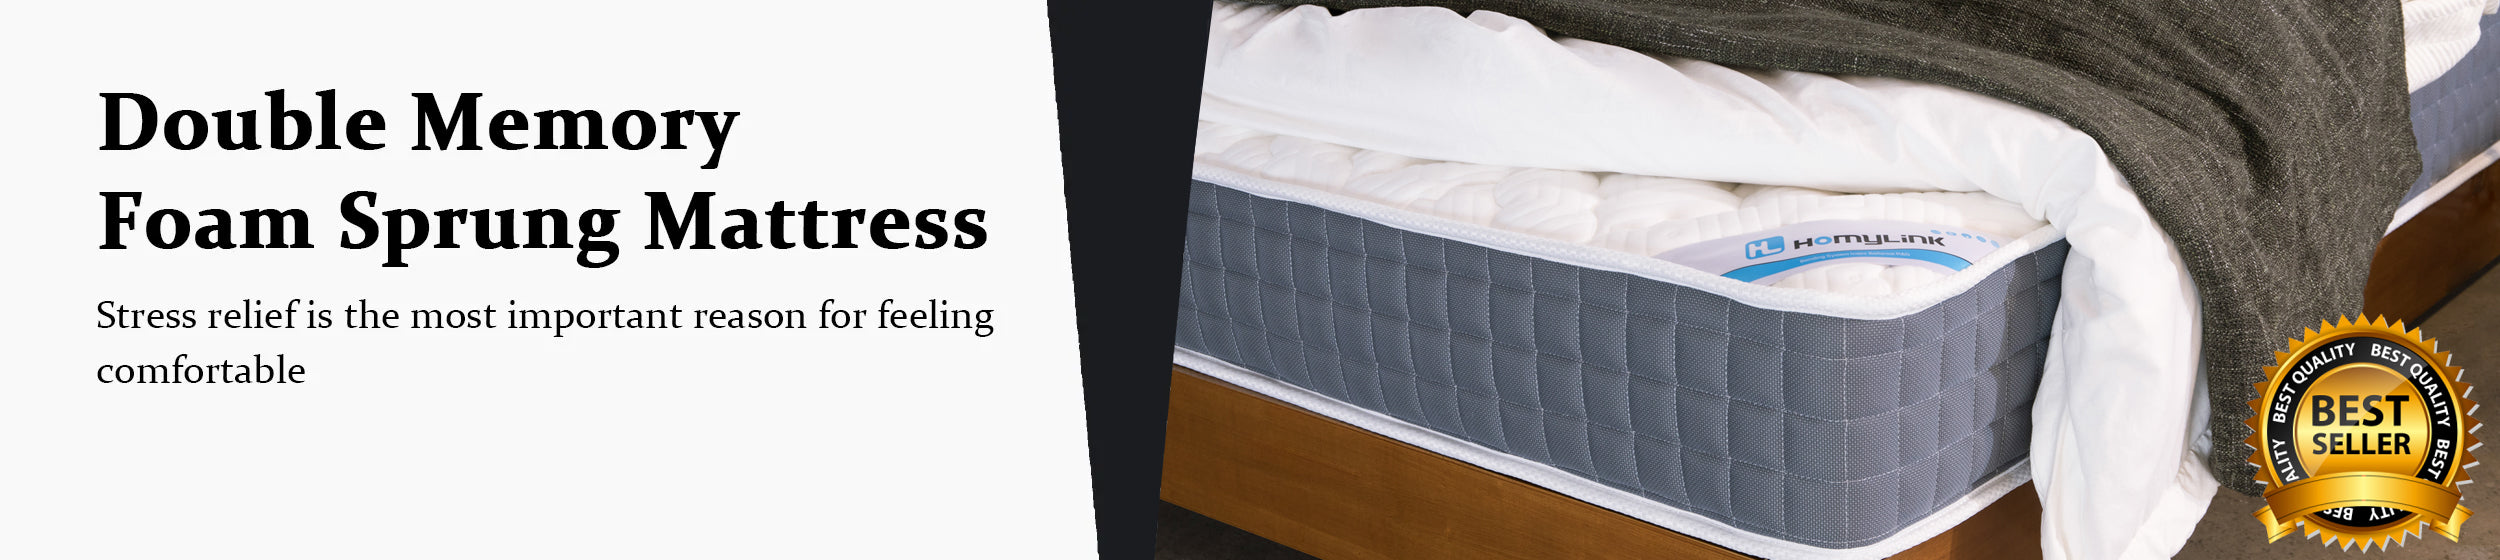 Homylink memory foam mattress